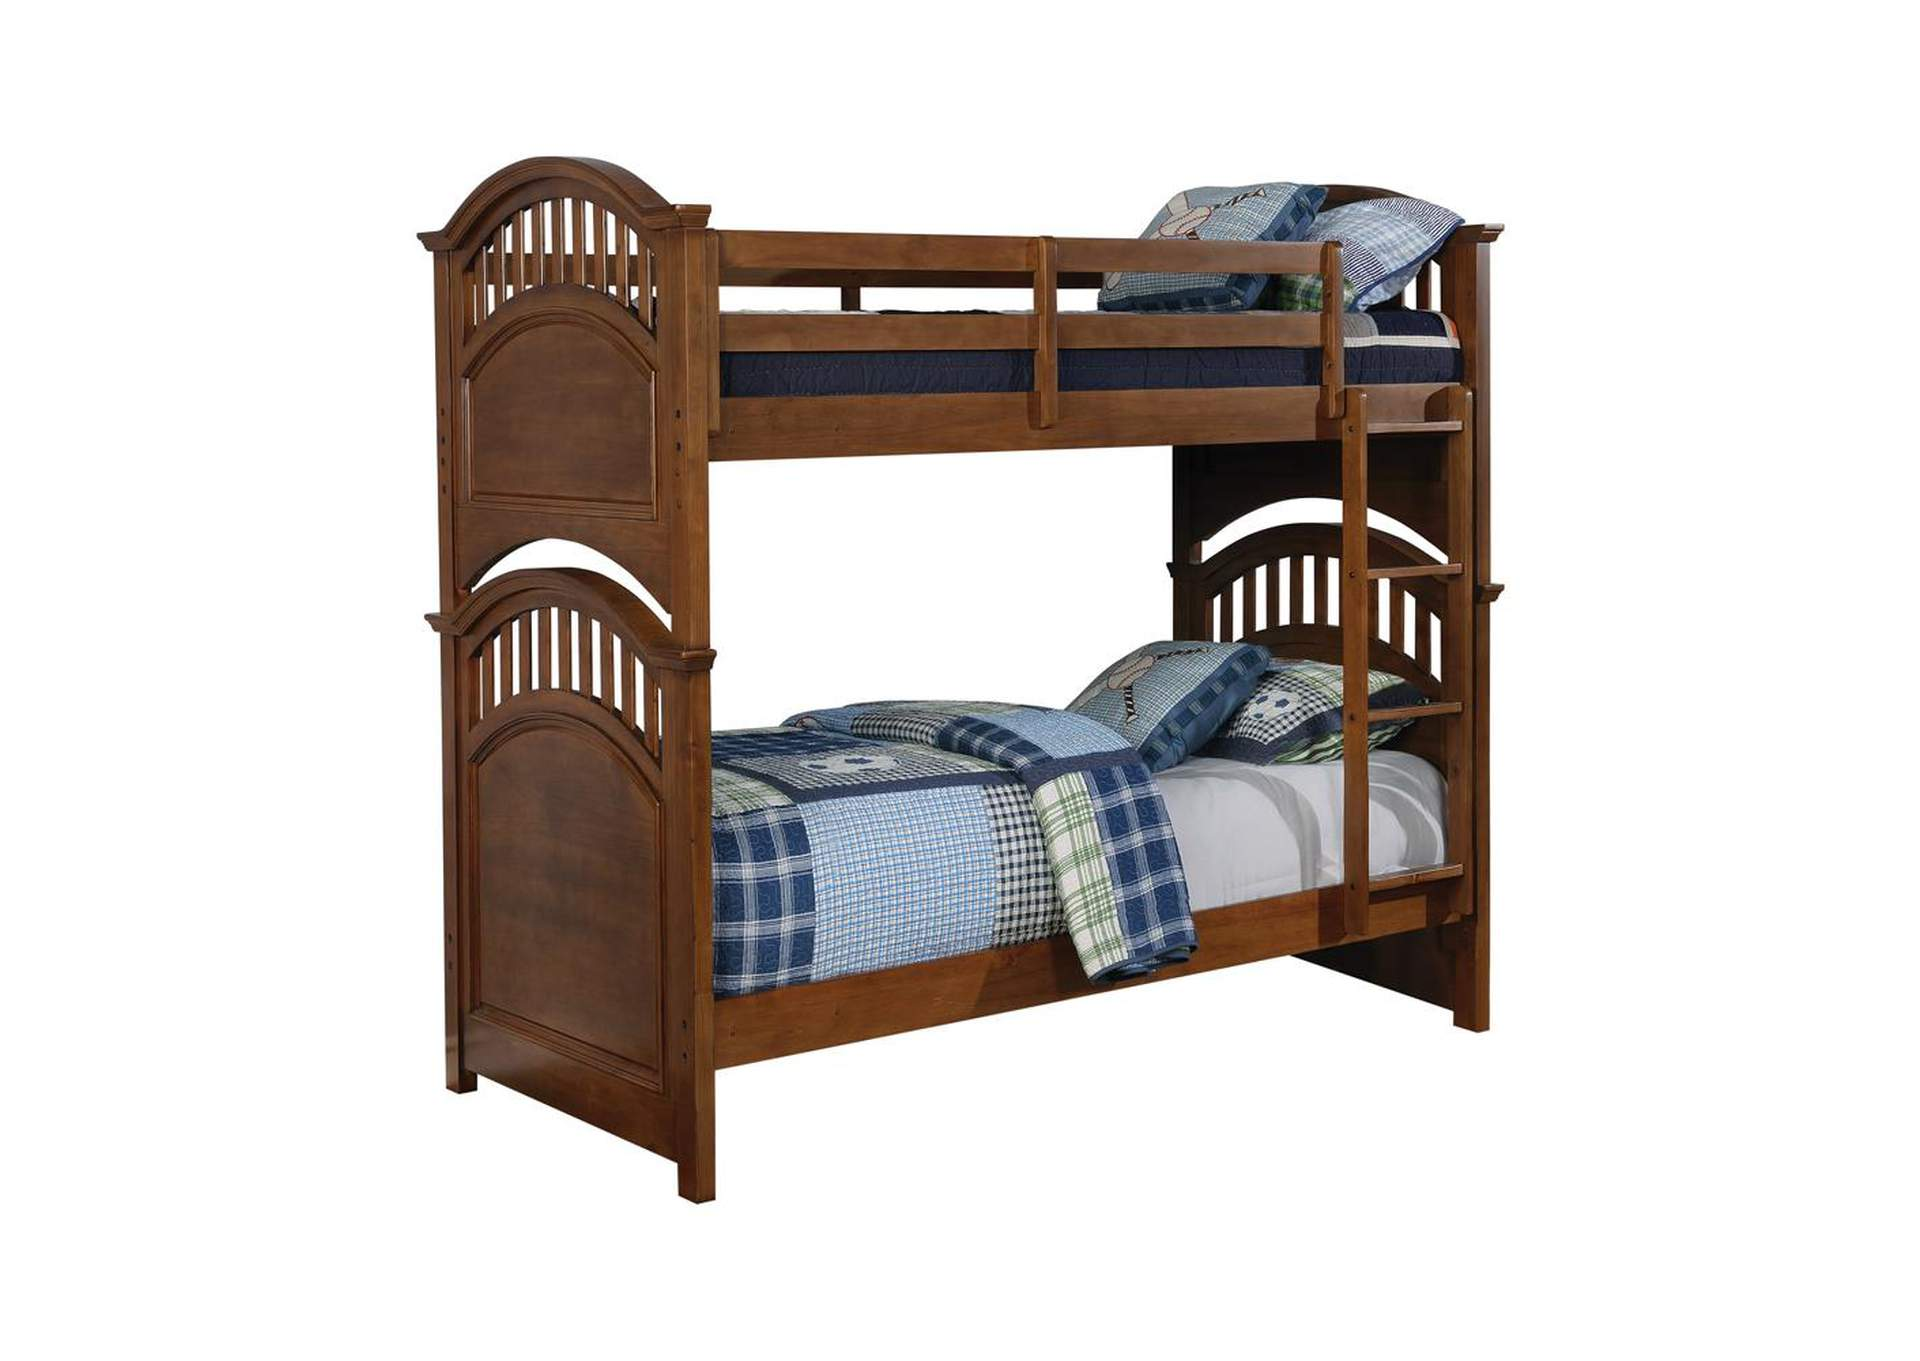 Quincy Halsted Casual Walnut Twin-over-Twin Bunk Bed,Coaster Furniture